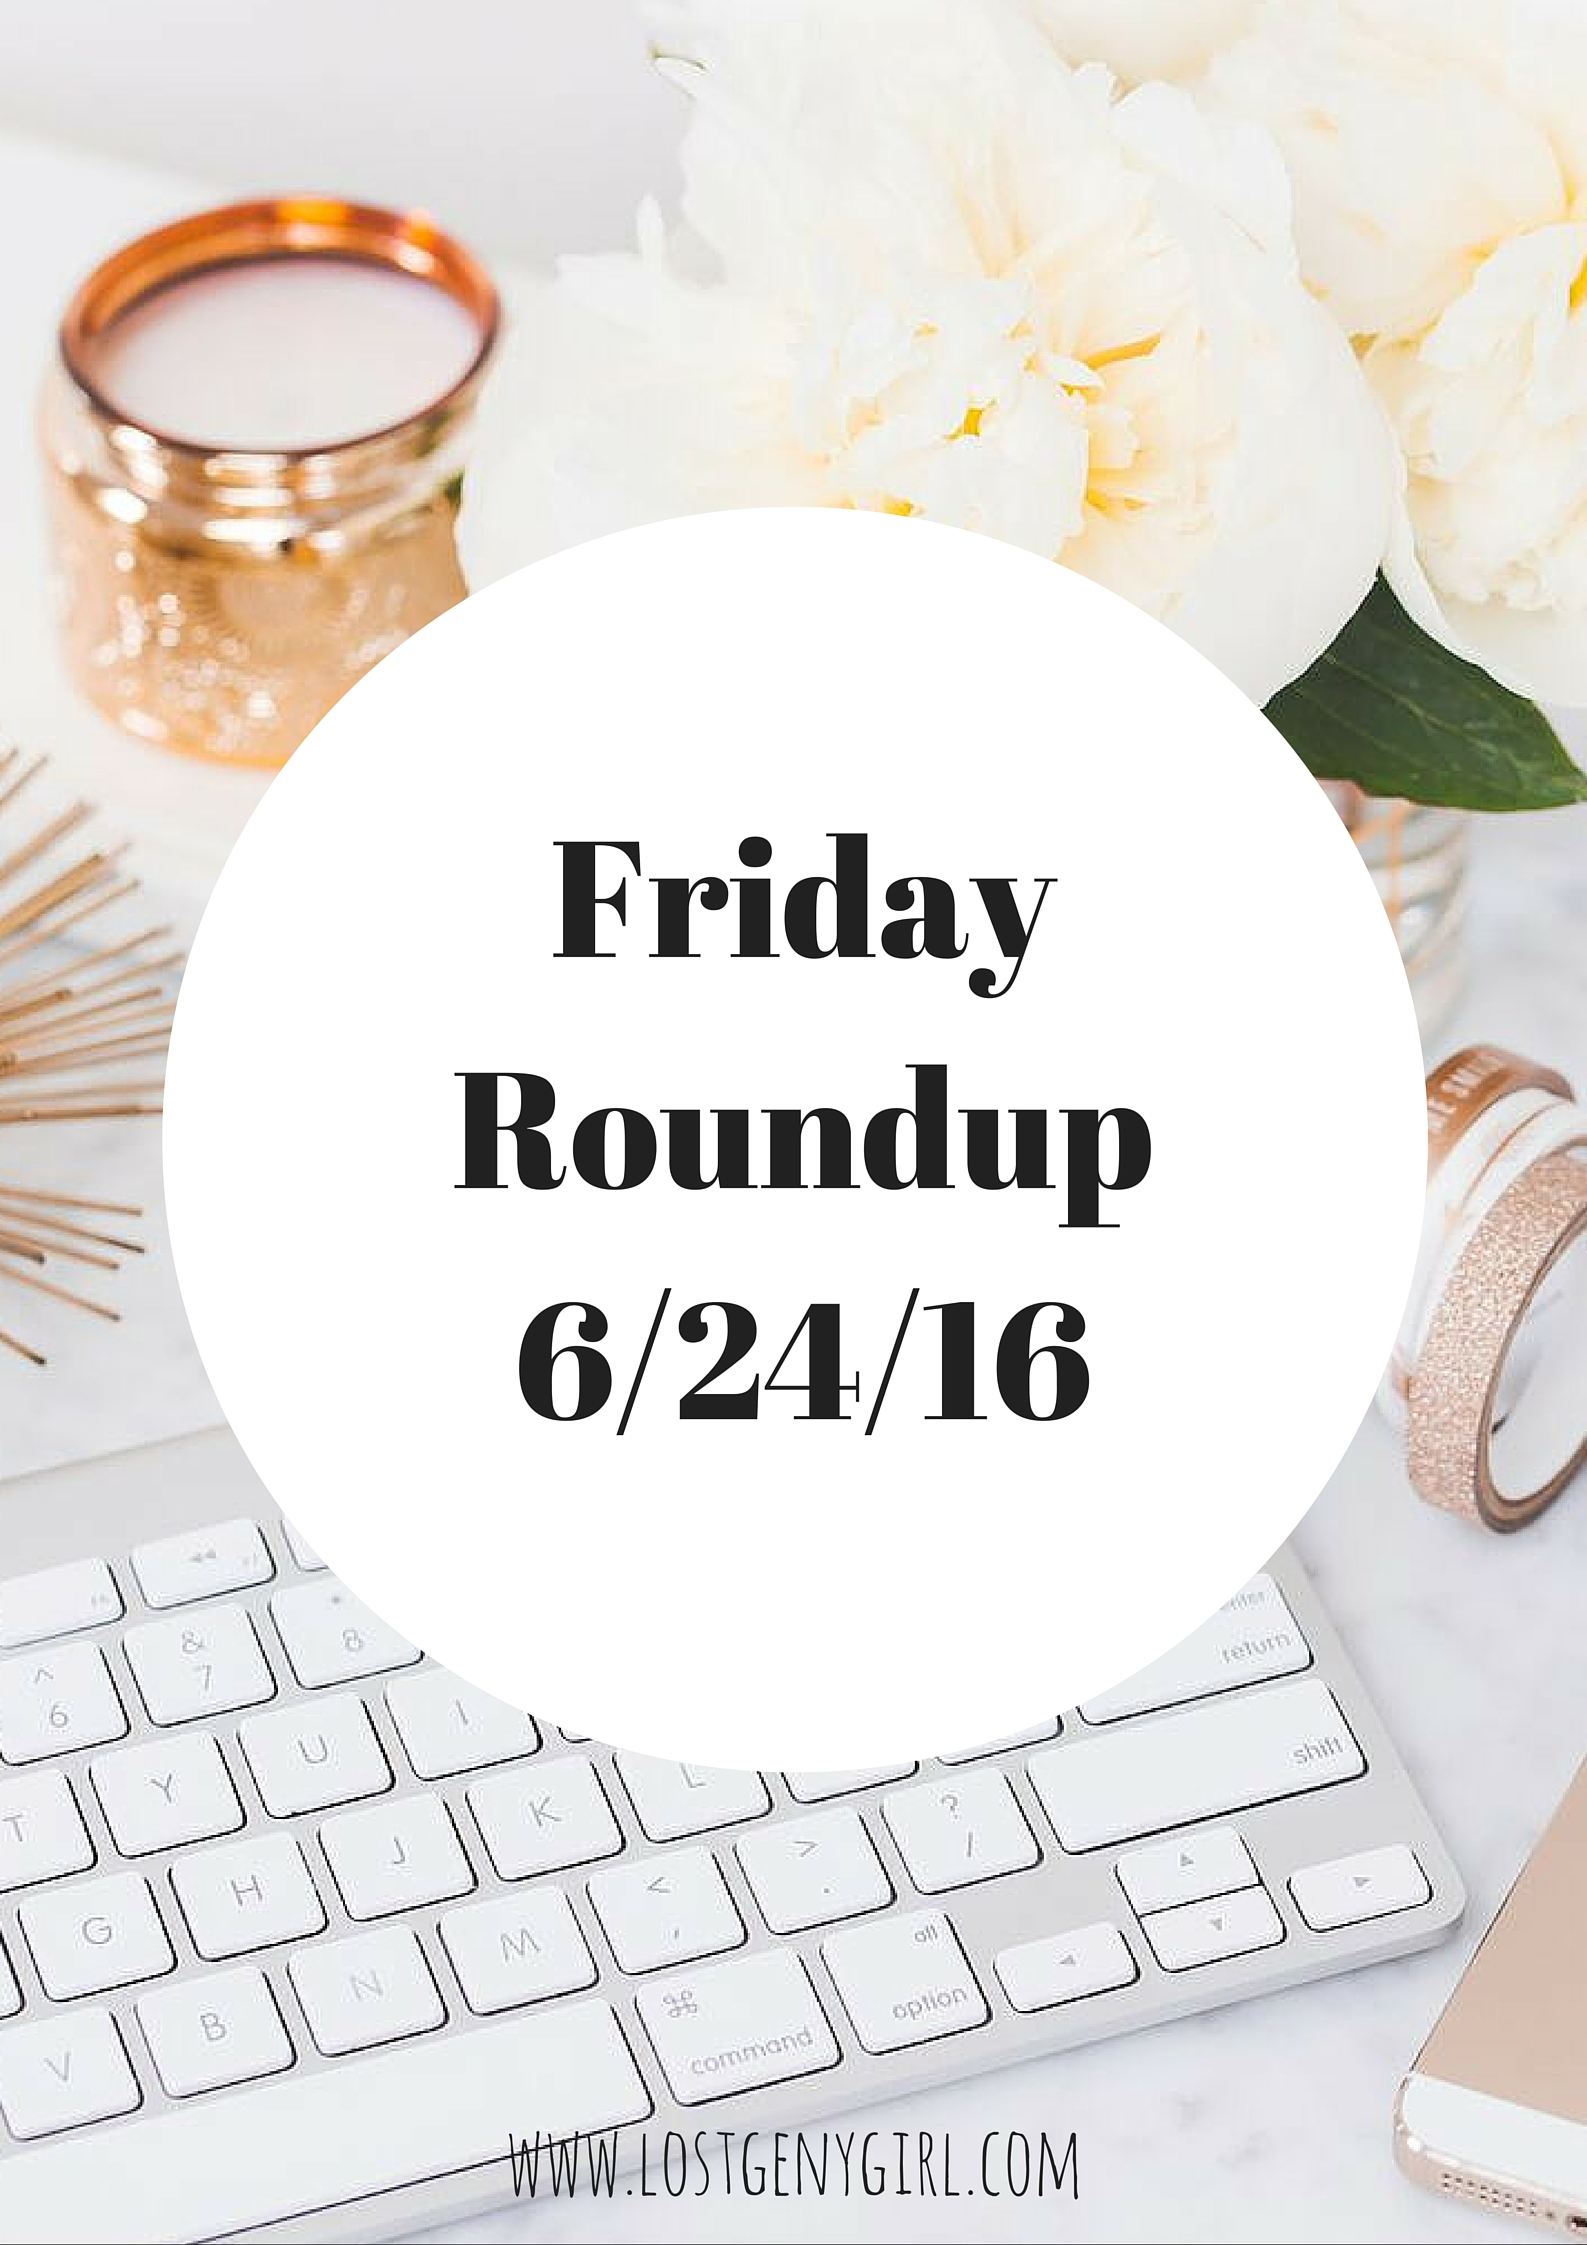 Friday Roundup 6/24/16